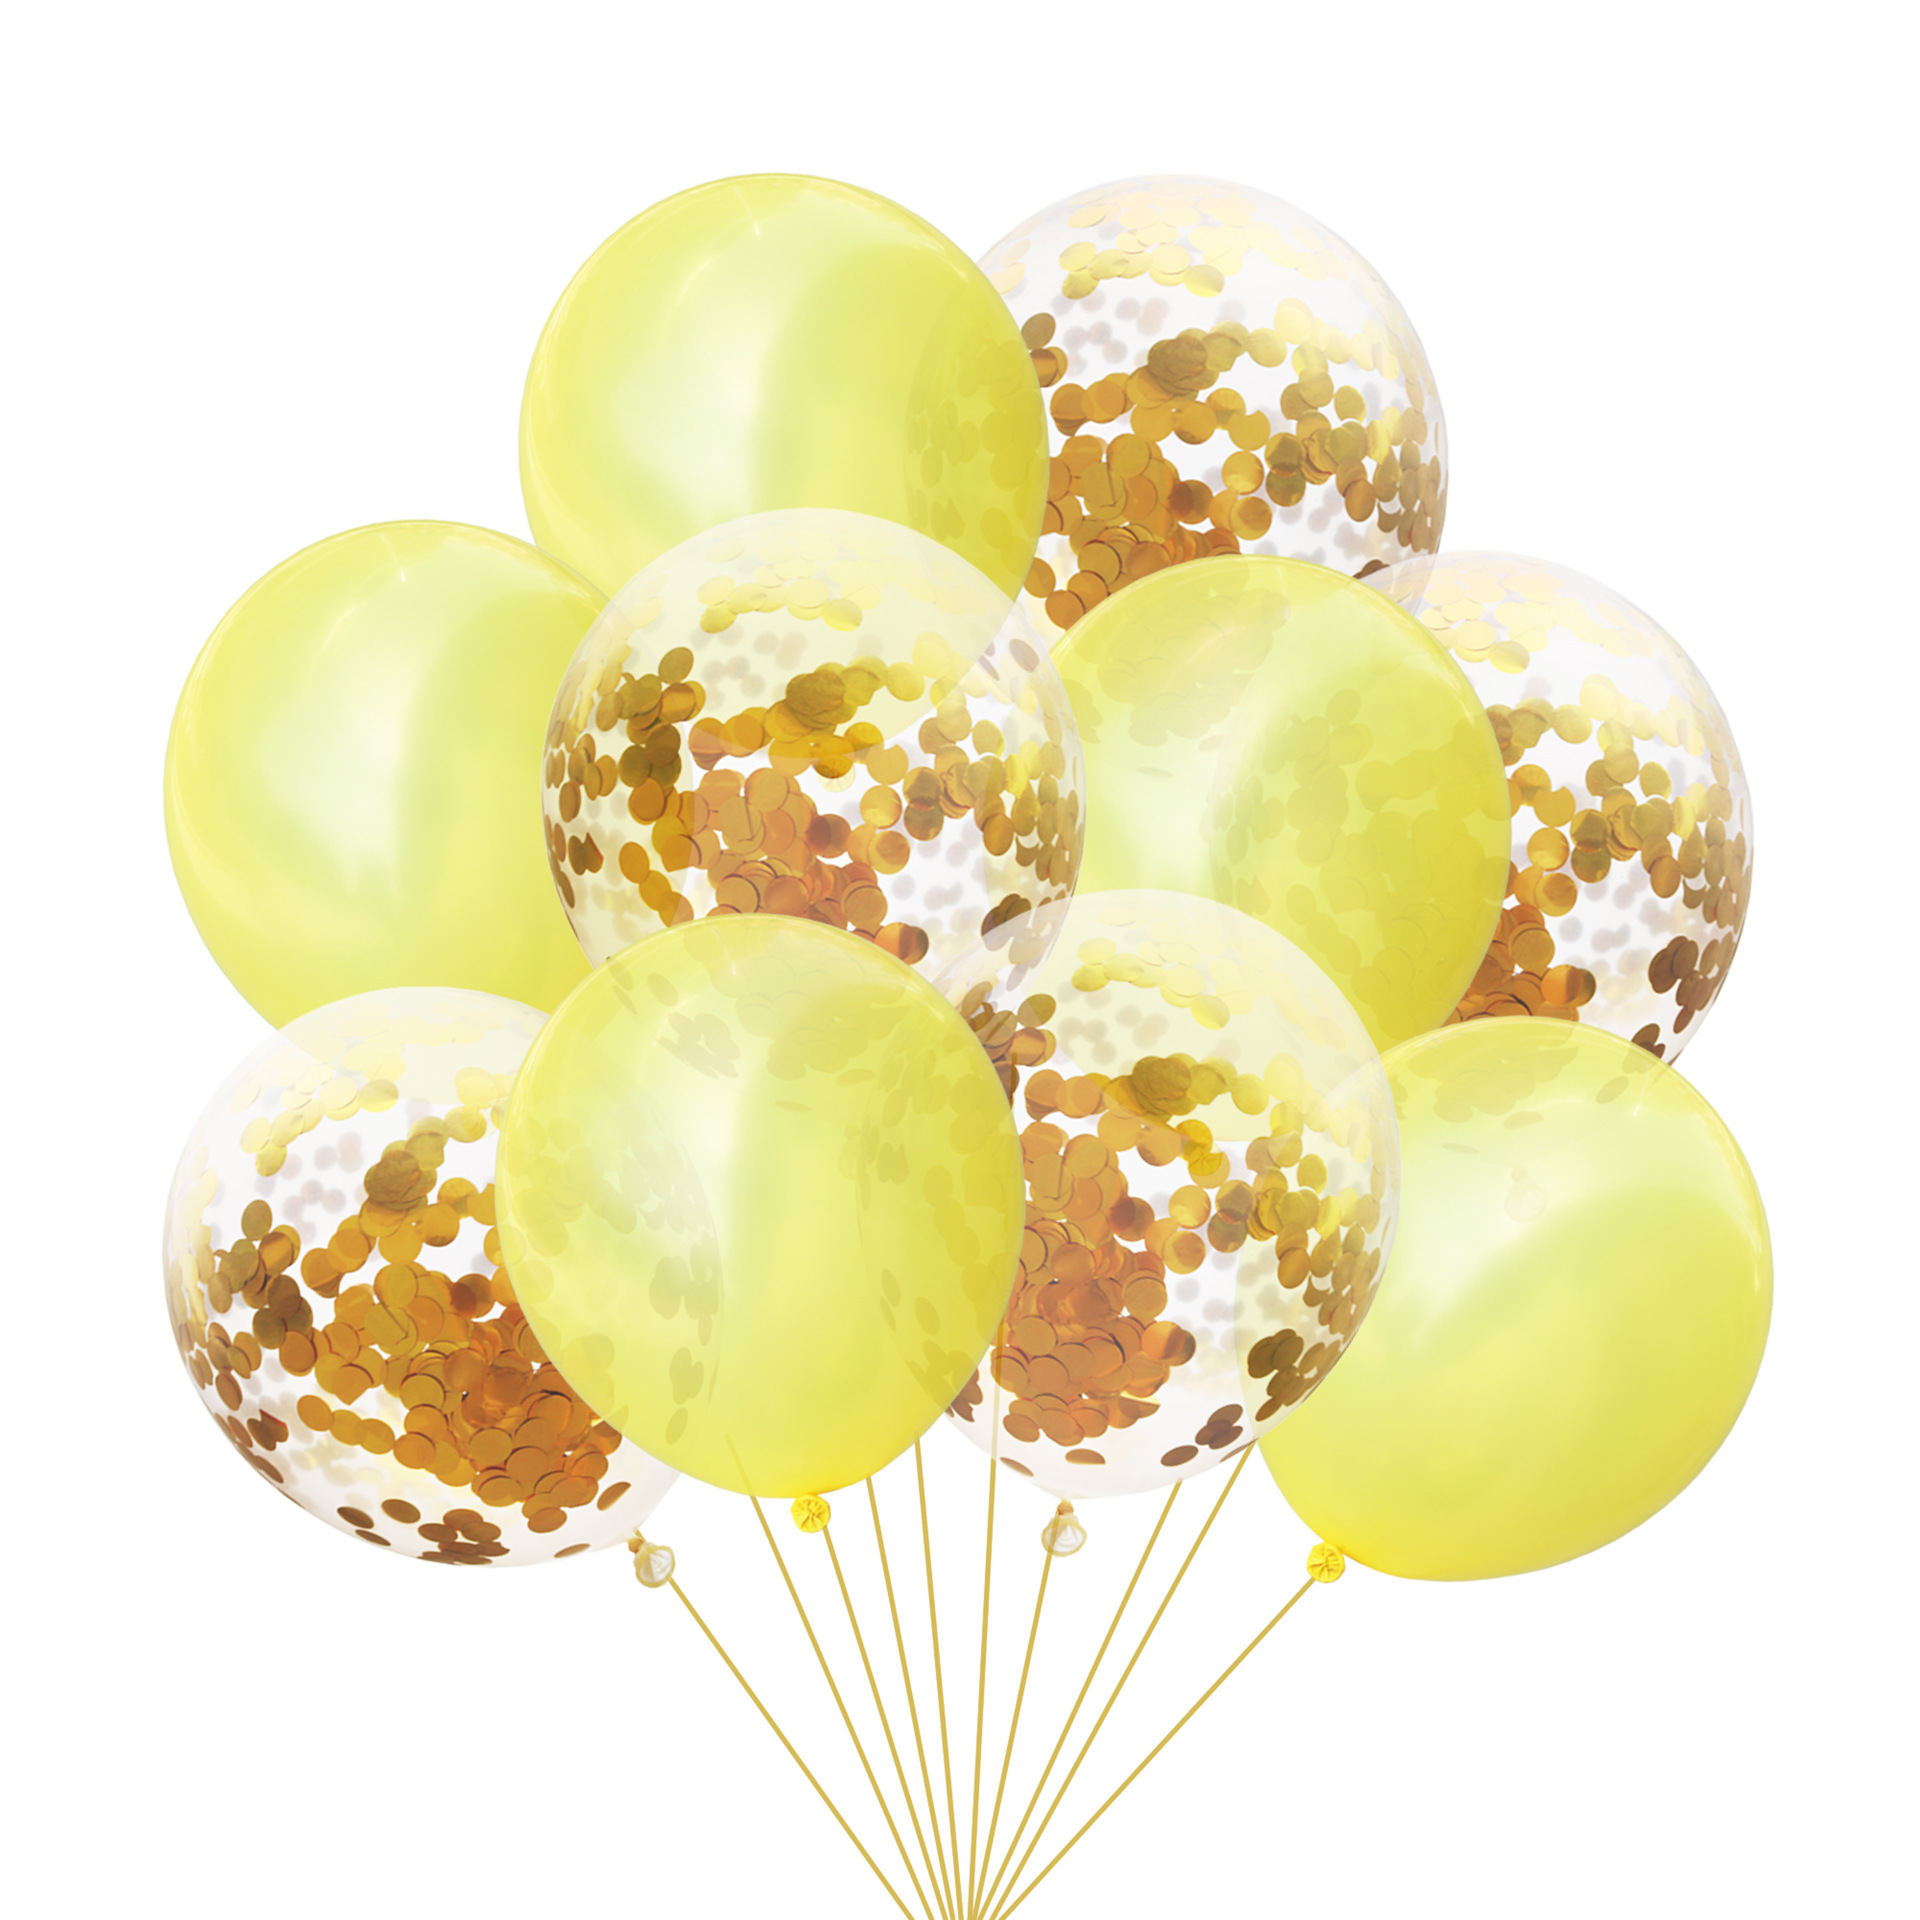 10pcs Set Multicolor Confetti Latex Balloons Wedding Decoration Balloon Happy Birthday Party Decor Baby Shower Festival Supplies in Ballons Accessories from Home Garden